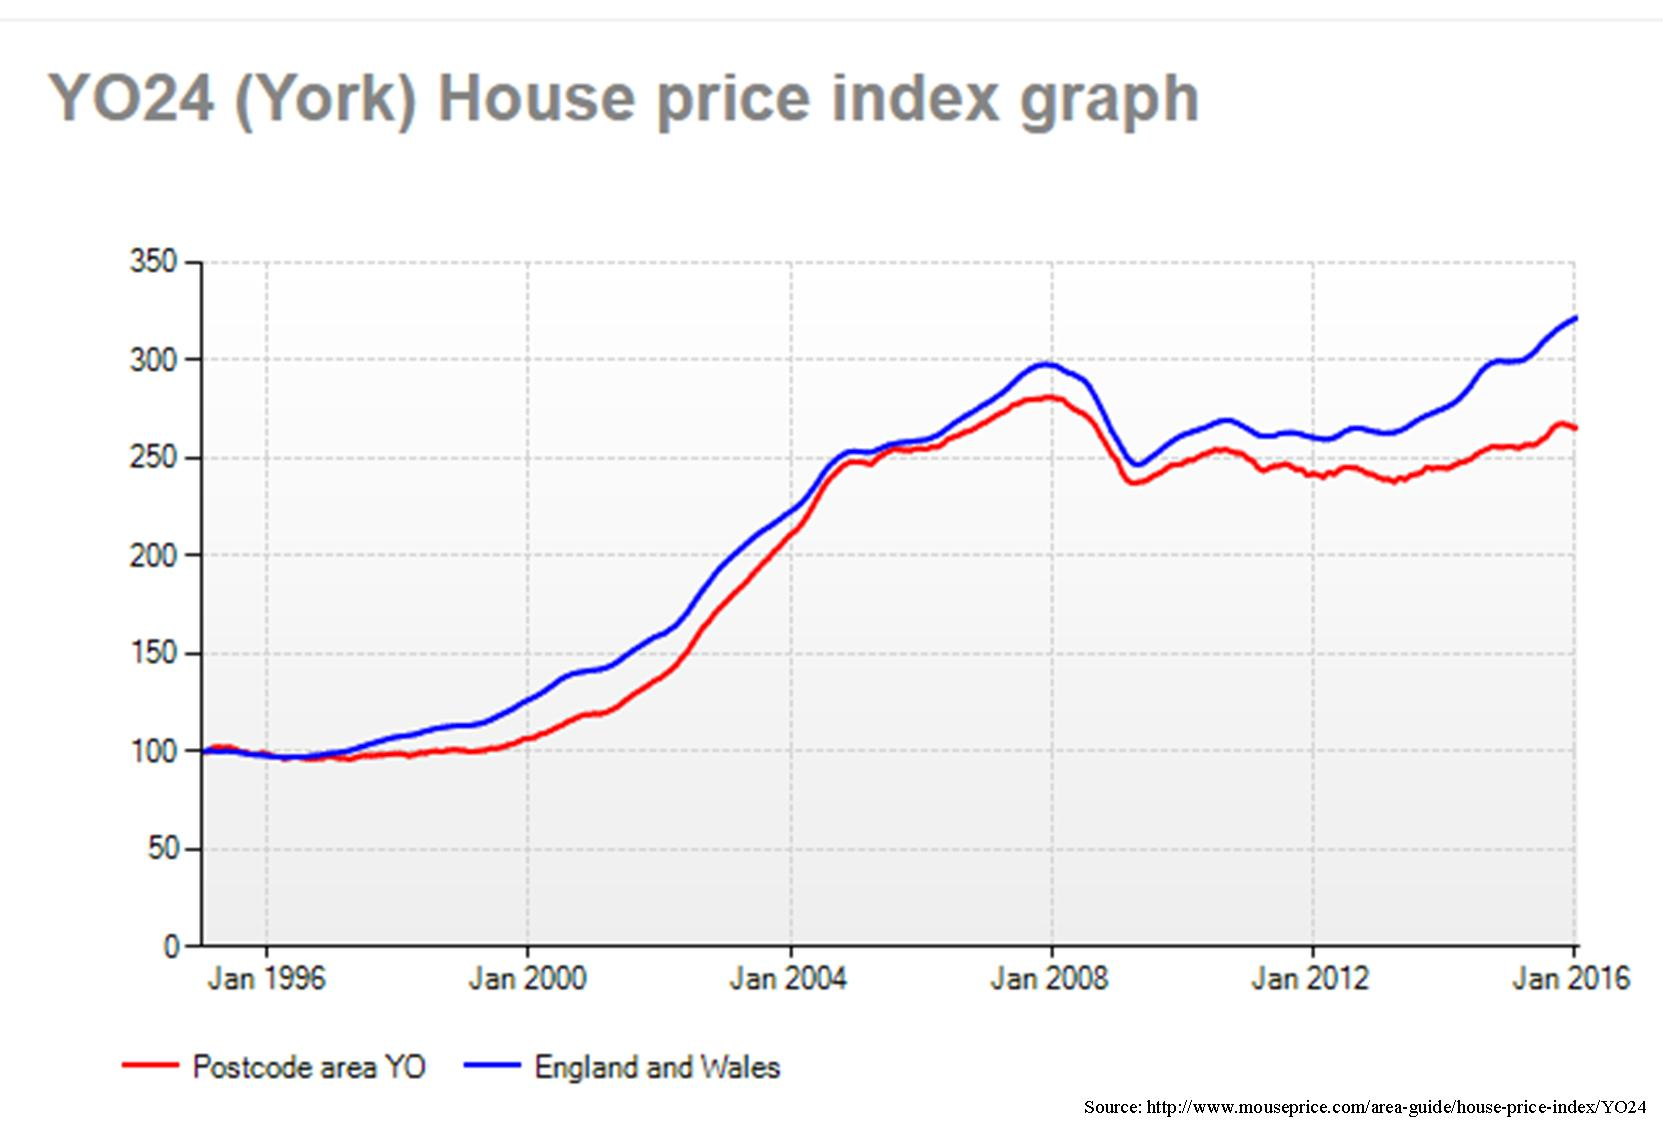 House price trends in York